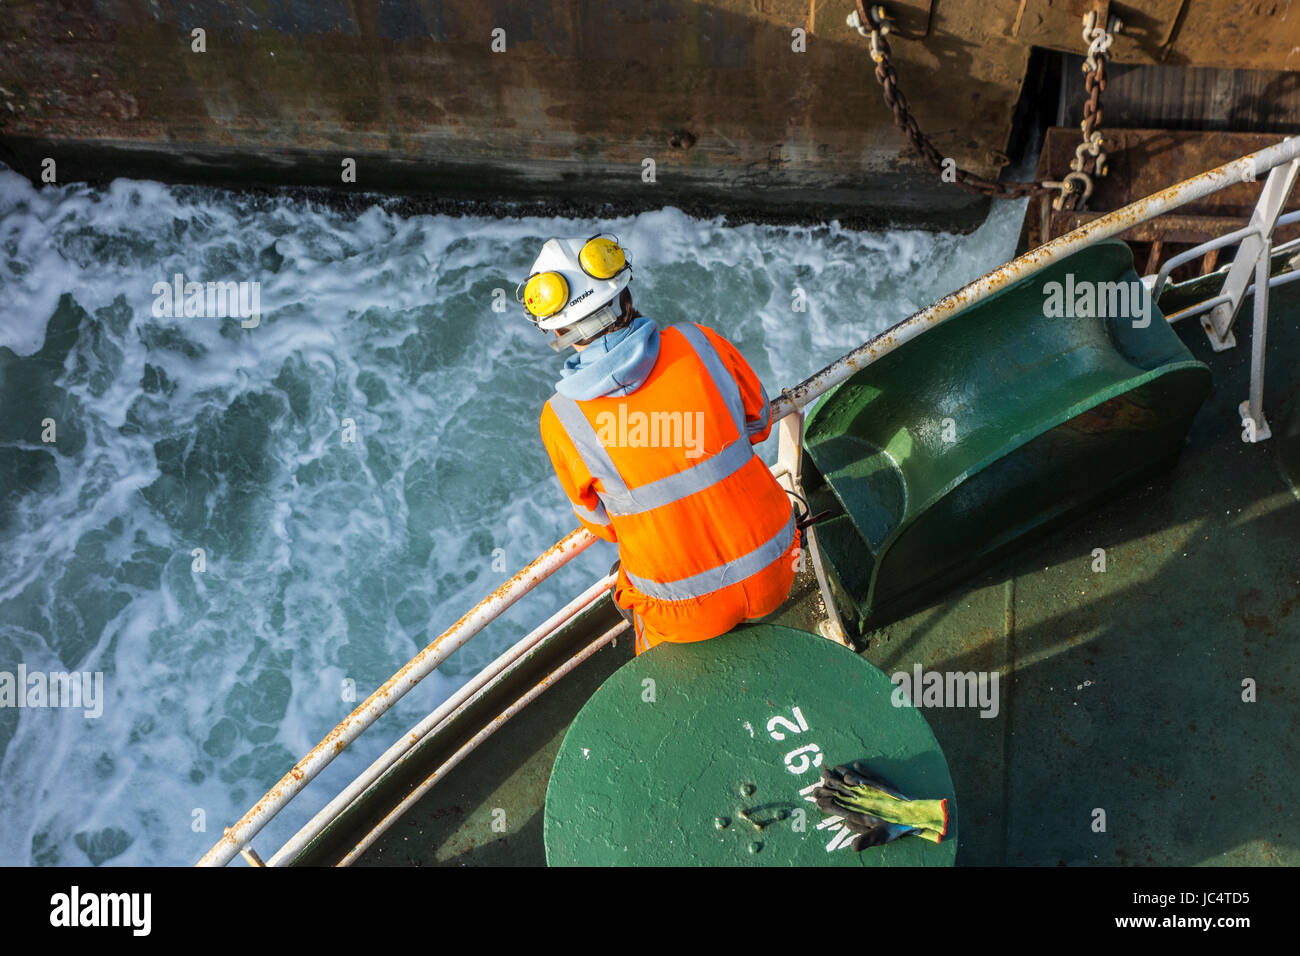 Female crew member in orange overall and wearing safety helmet working on deck of car carrier / cargo ship in seaport Stock Photo